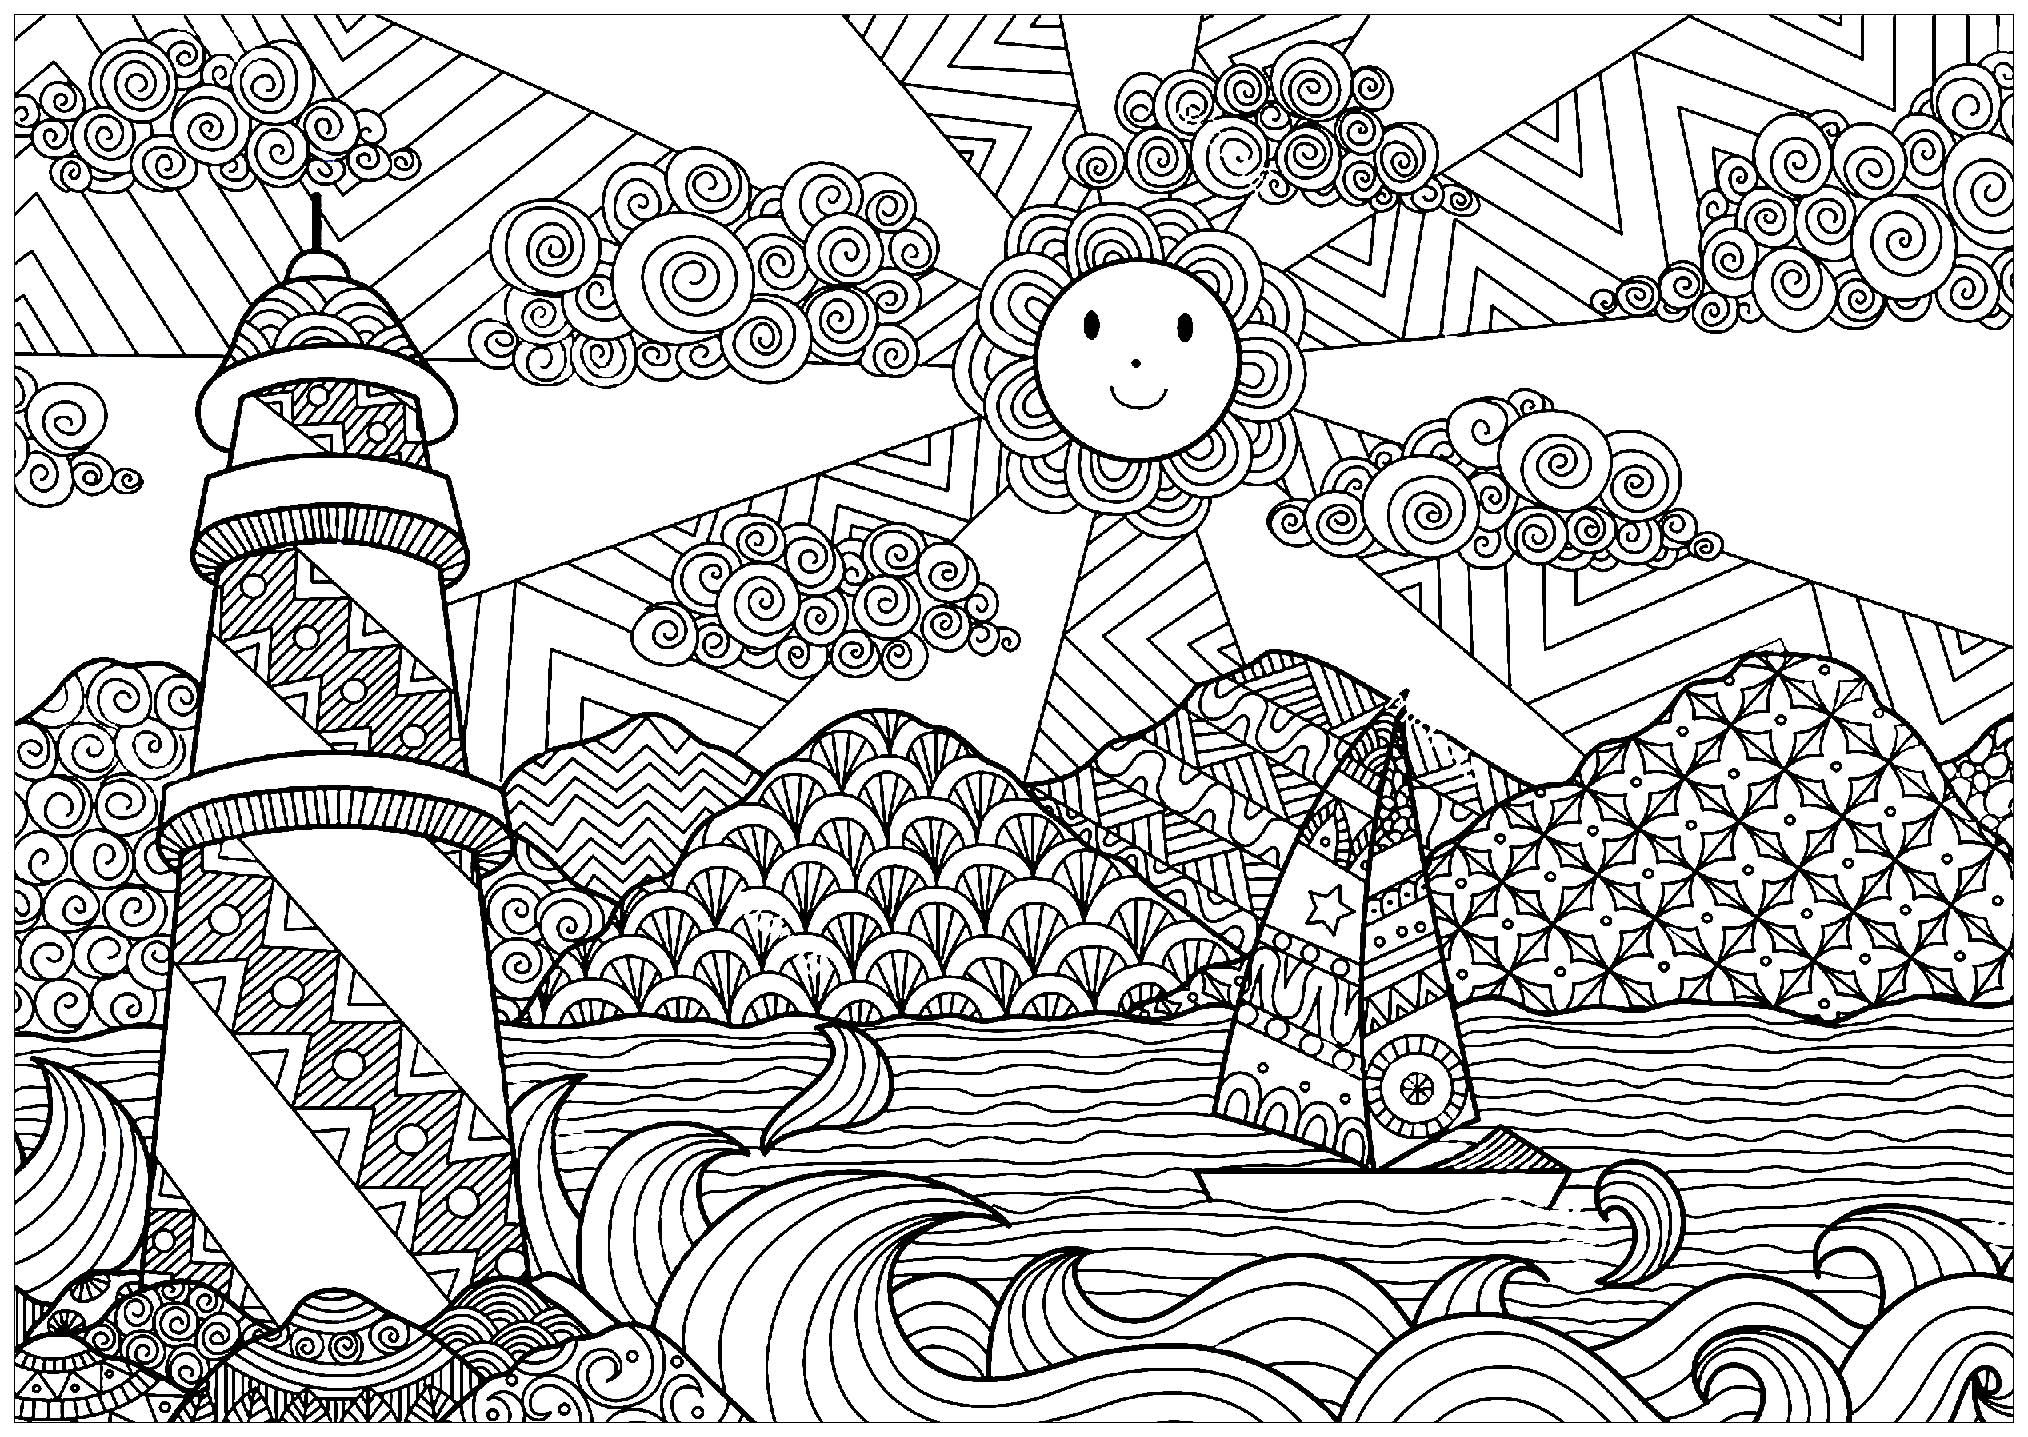 Landscapes - Coloring pages for adults | JustColor